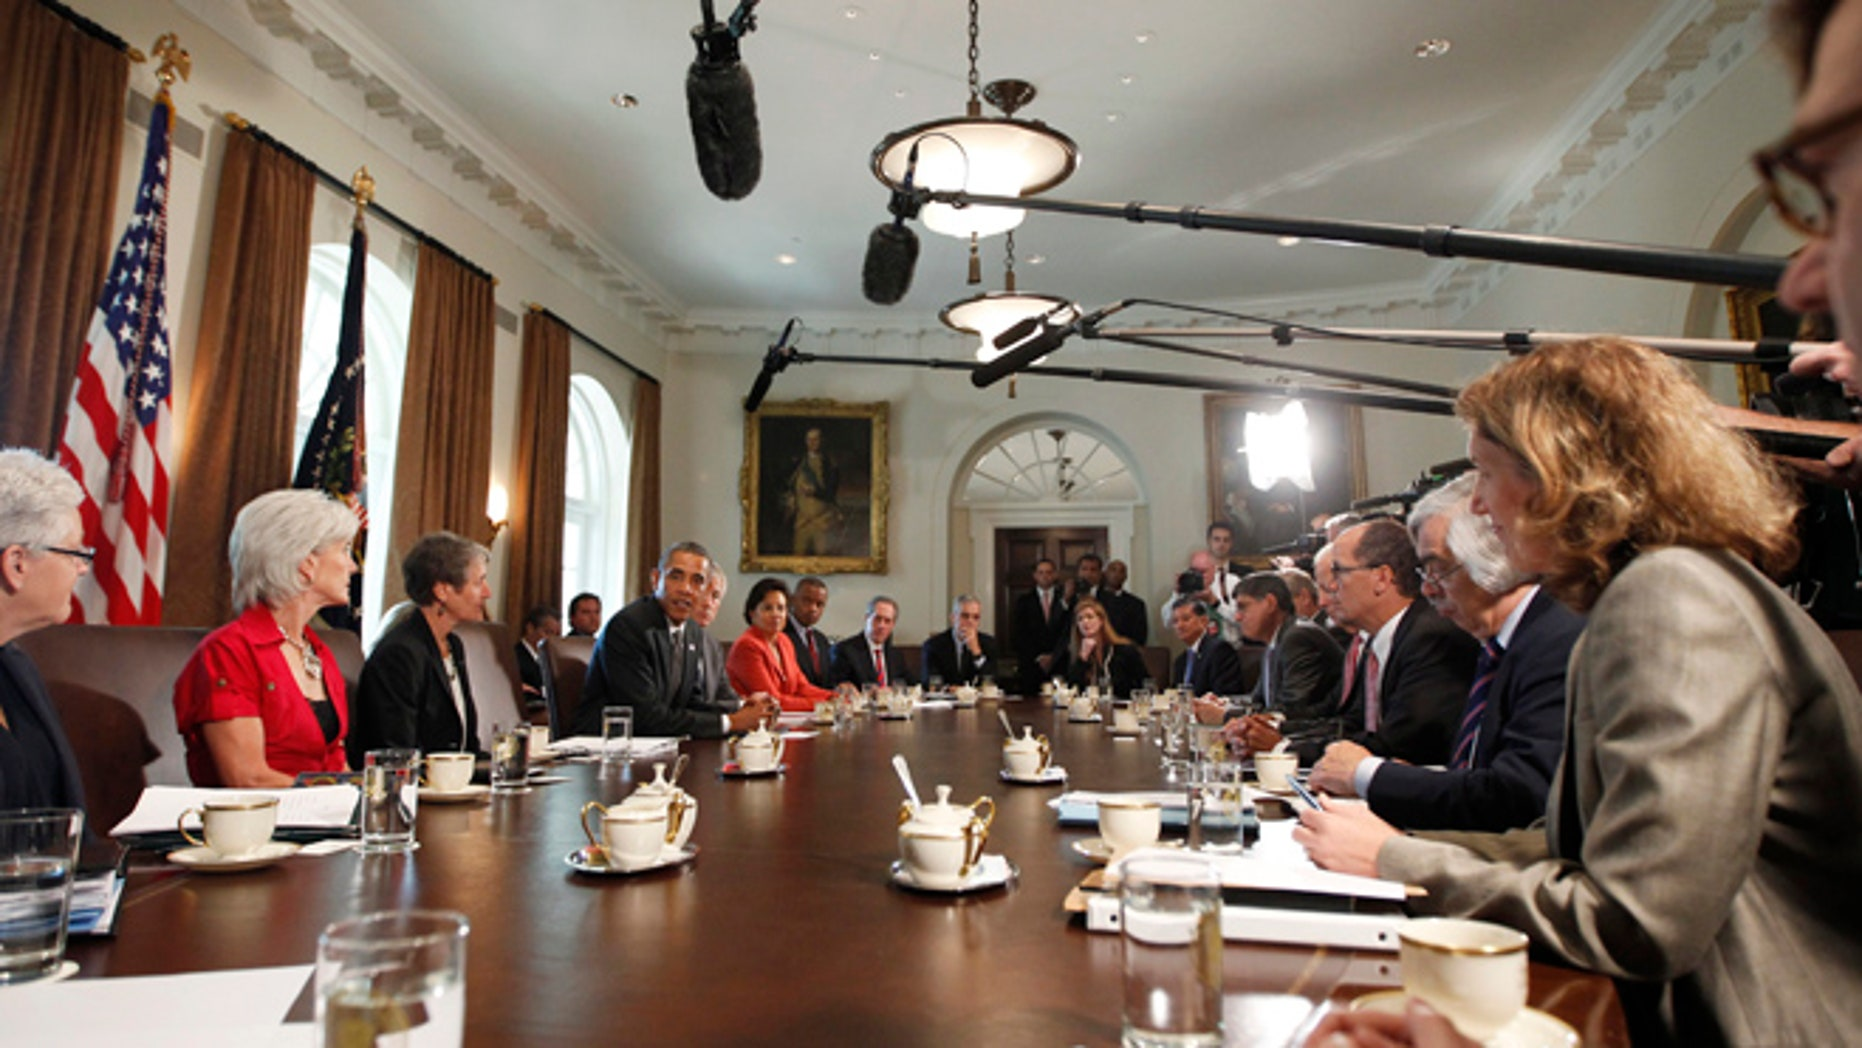 Sept. 12, 2013: President Obama speaks during a Cabinet meeting in the West Wing of the White House in Washington.